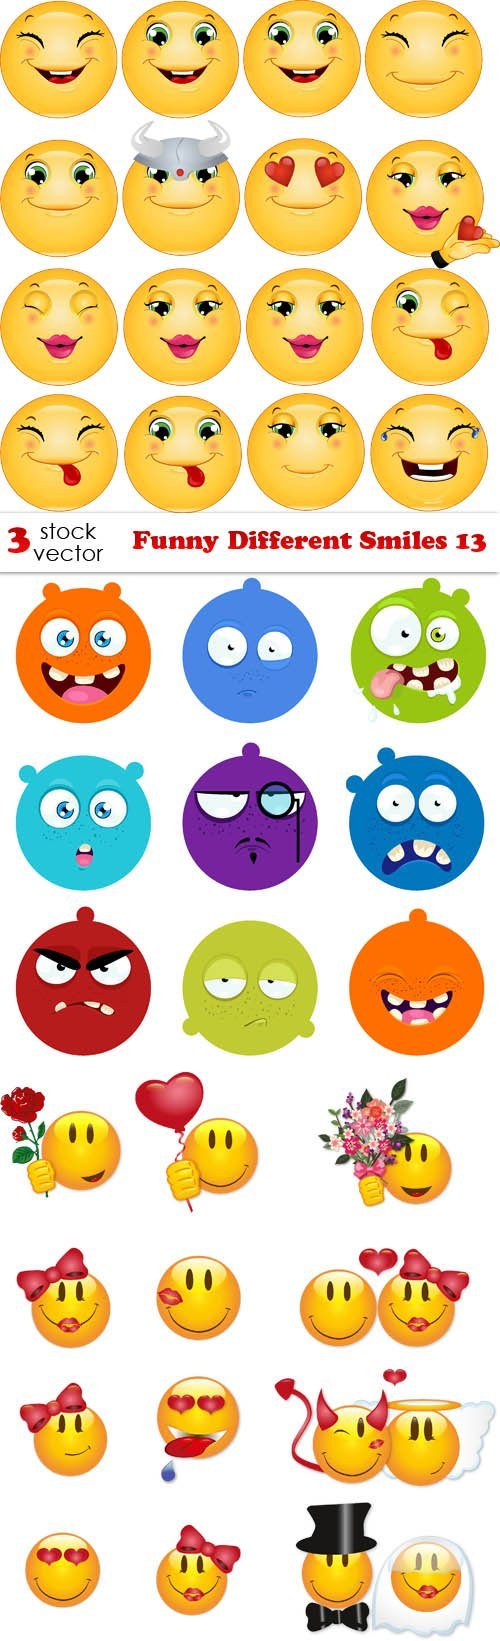 Vectors - Funny Different Smiles 13